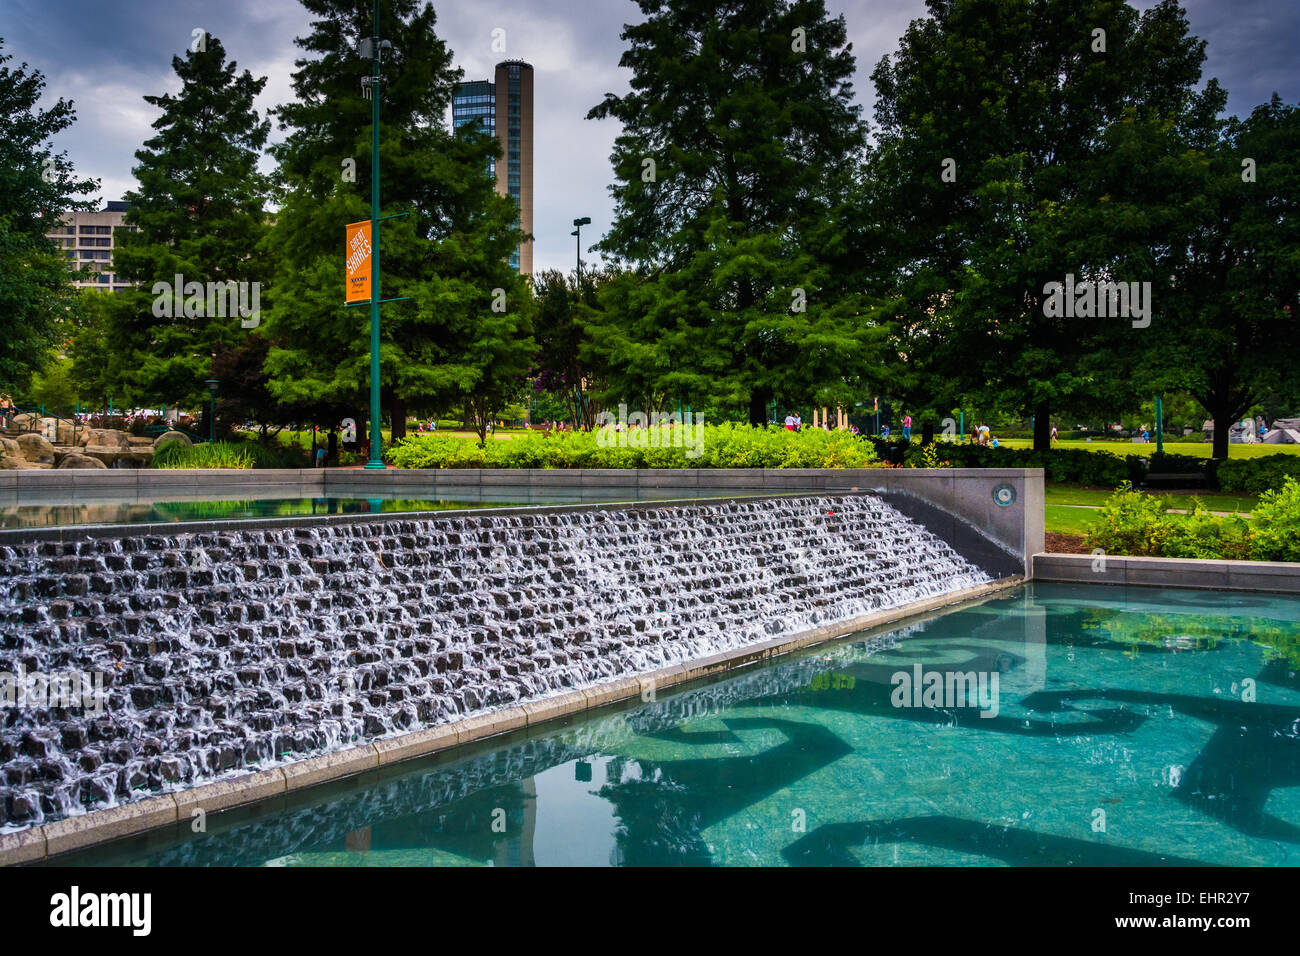 Waterfall and pool at Centennial Olympic Park in downtown Atlanta, Georgia. - Stock Image